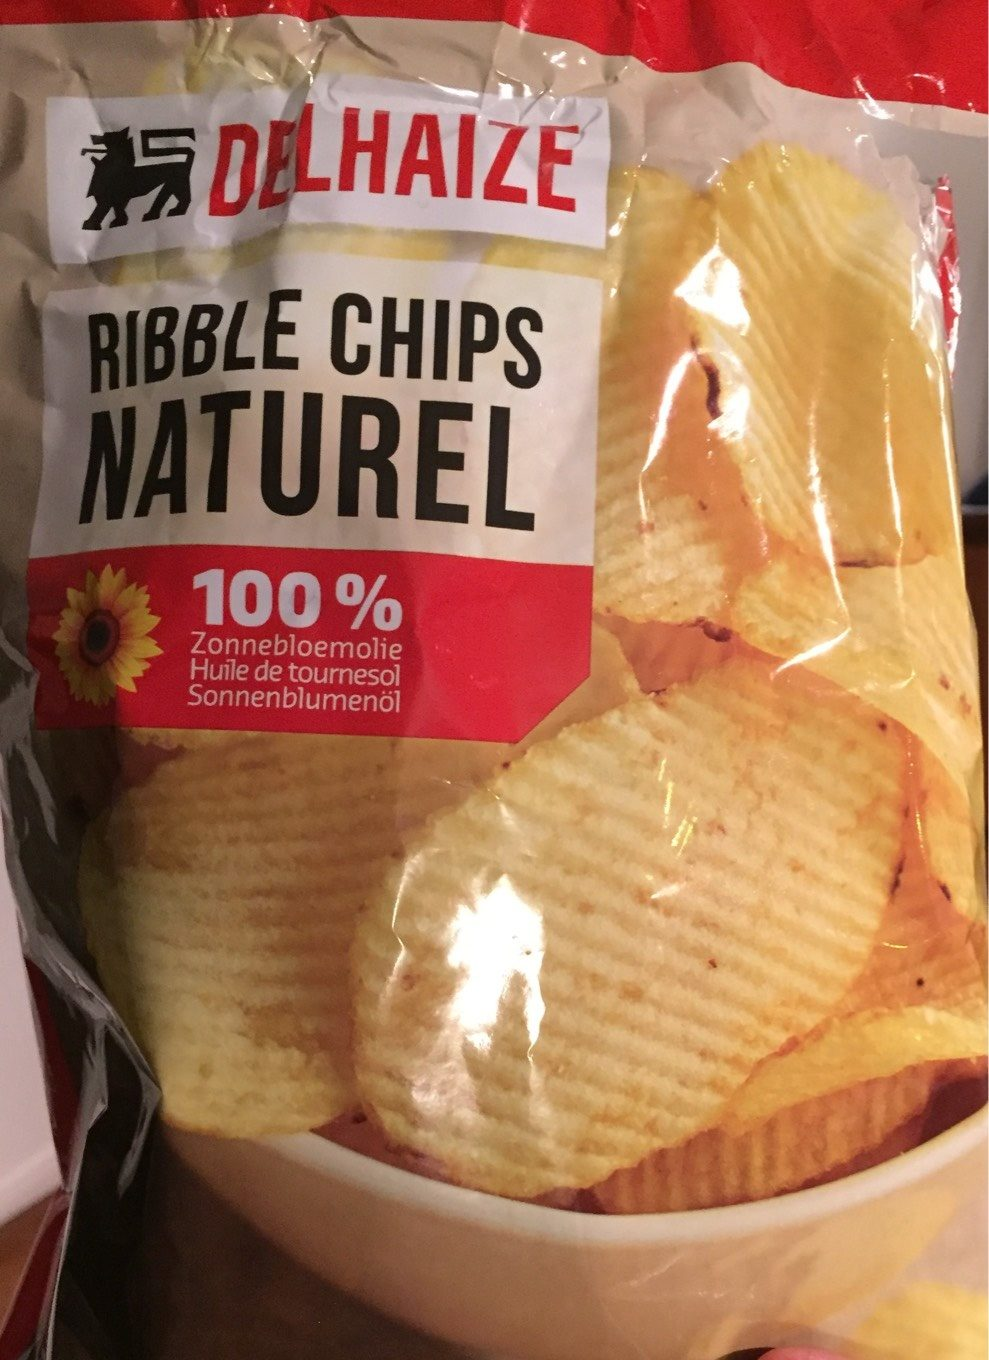 Ribble Chips Naturel - Product - fr